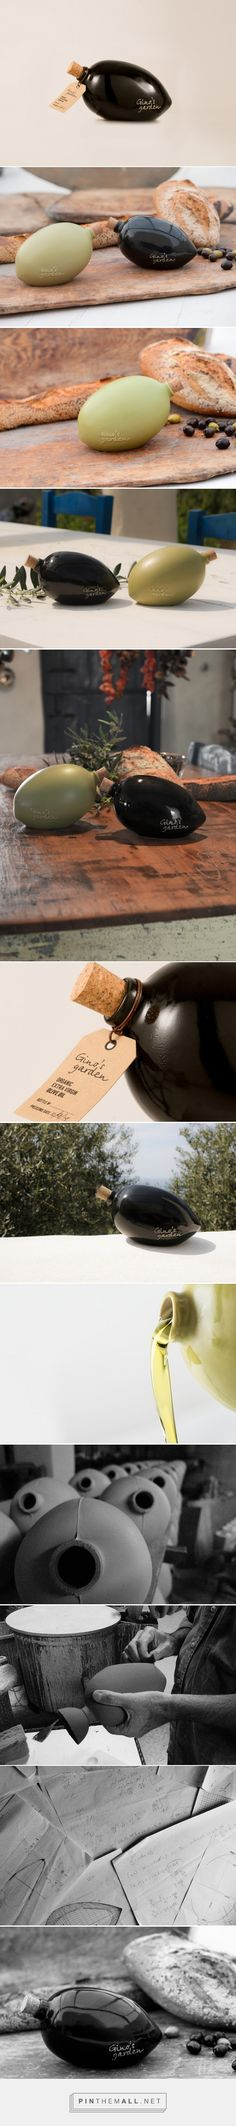 #Olive by Gino's Garden #packaging designed by Marios Karysios - http://www.packagingoftheworld.com/2015/04/olive-by-ginos-garden.html